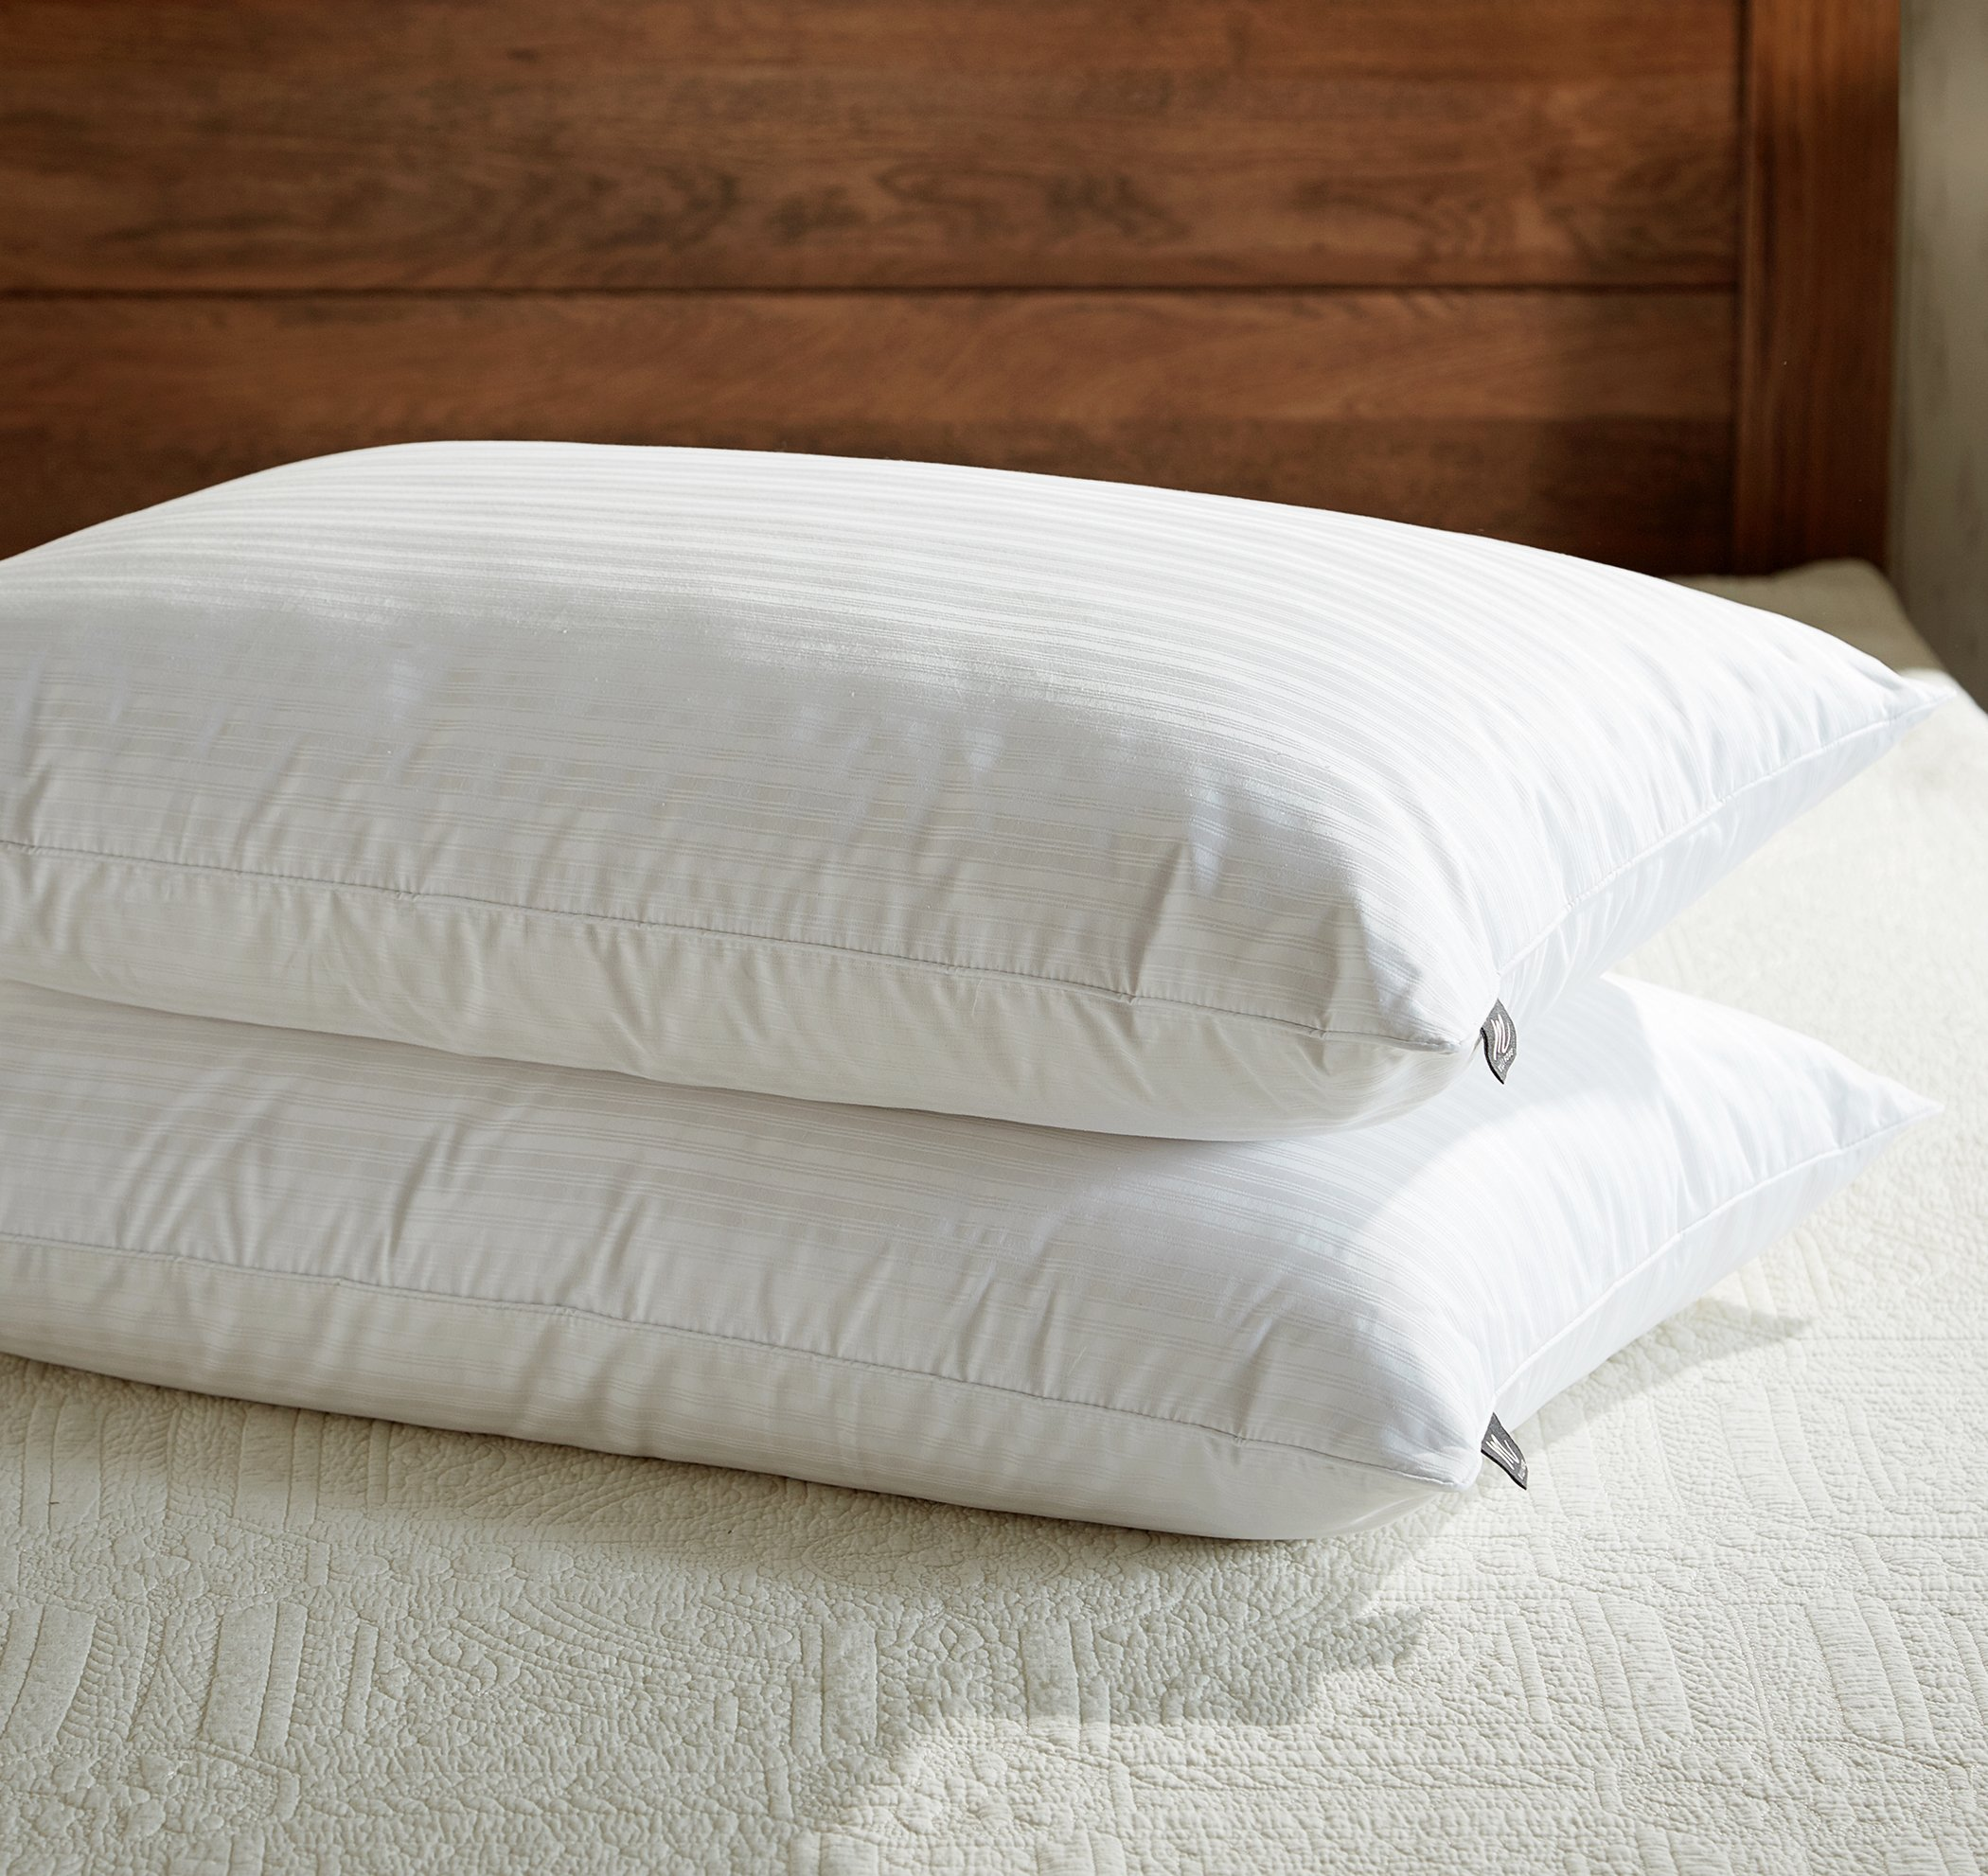 downluxe Goose Feather Down Pillow - Set of 2 Bed Pillows for Sleeping with Premium 100% Cotton Shell,Queen by downluxe